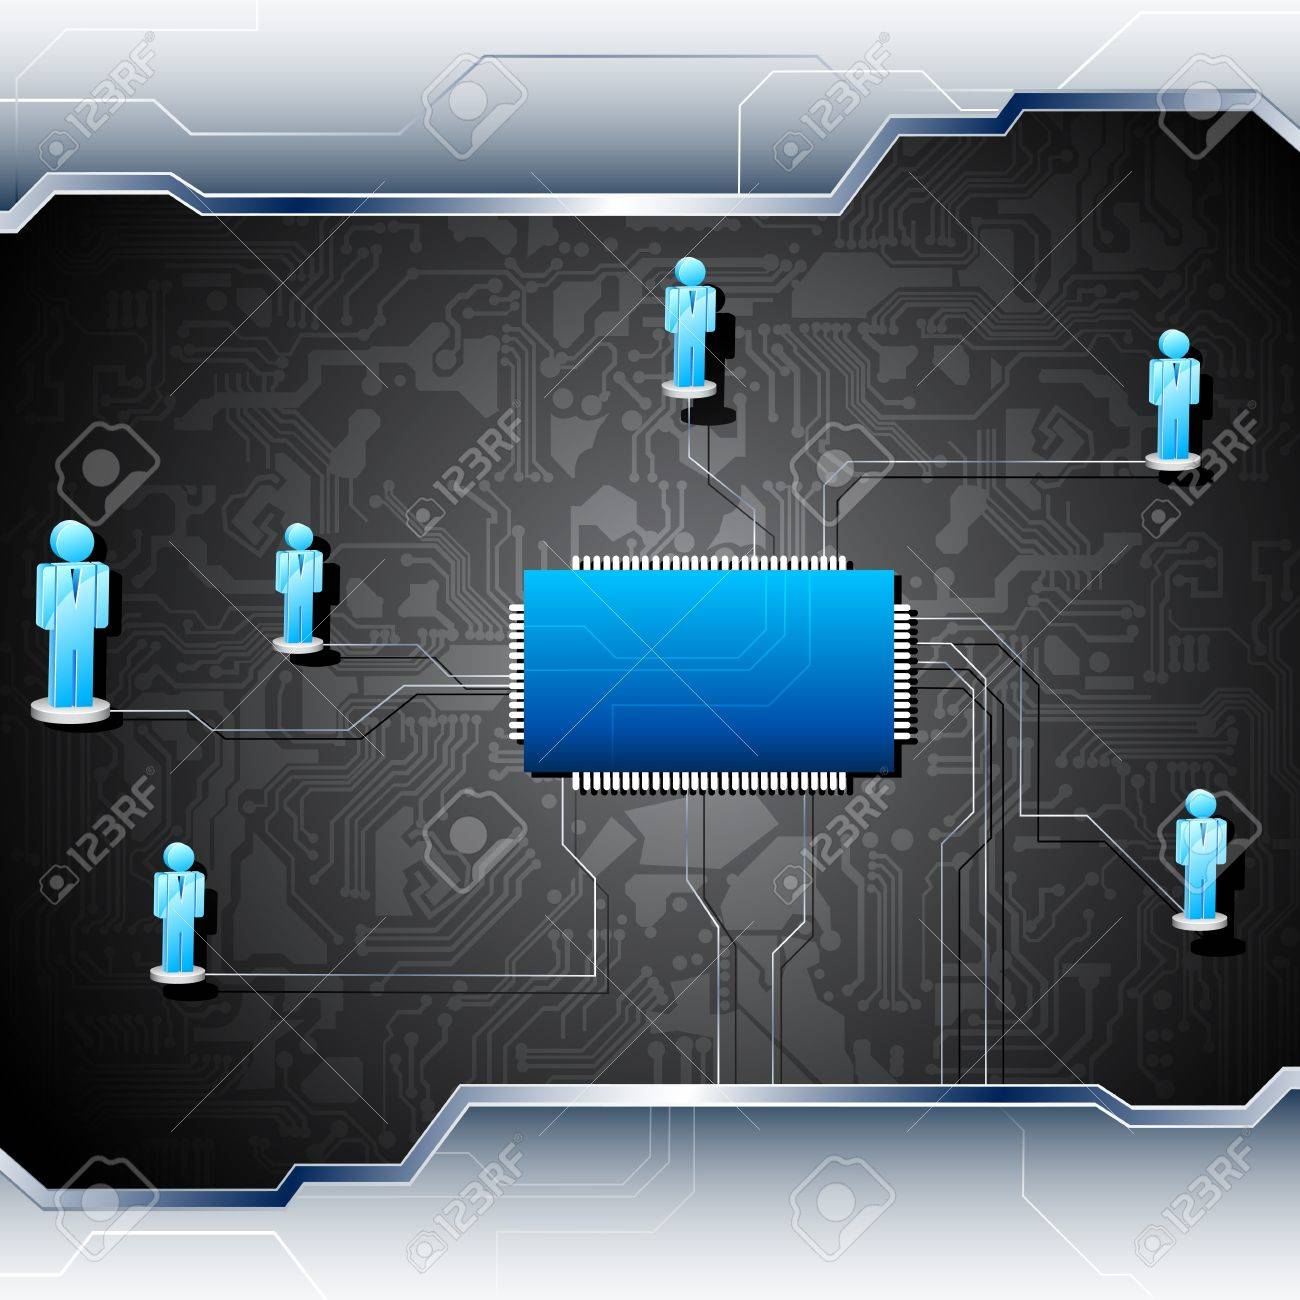 illustration of human figures connected in network on motherboard Stock Vector - 11915514